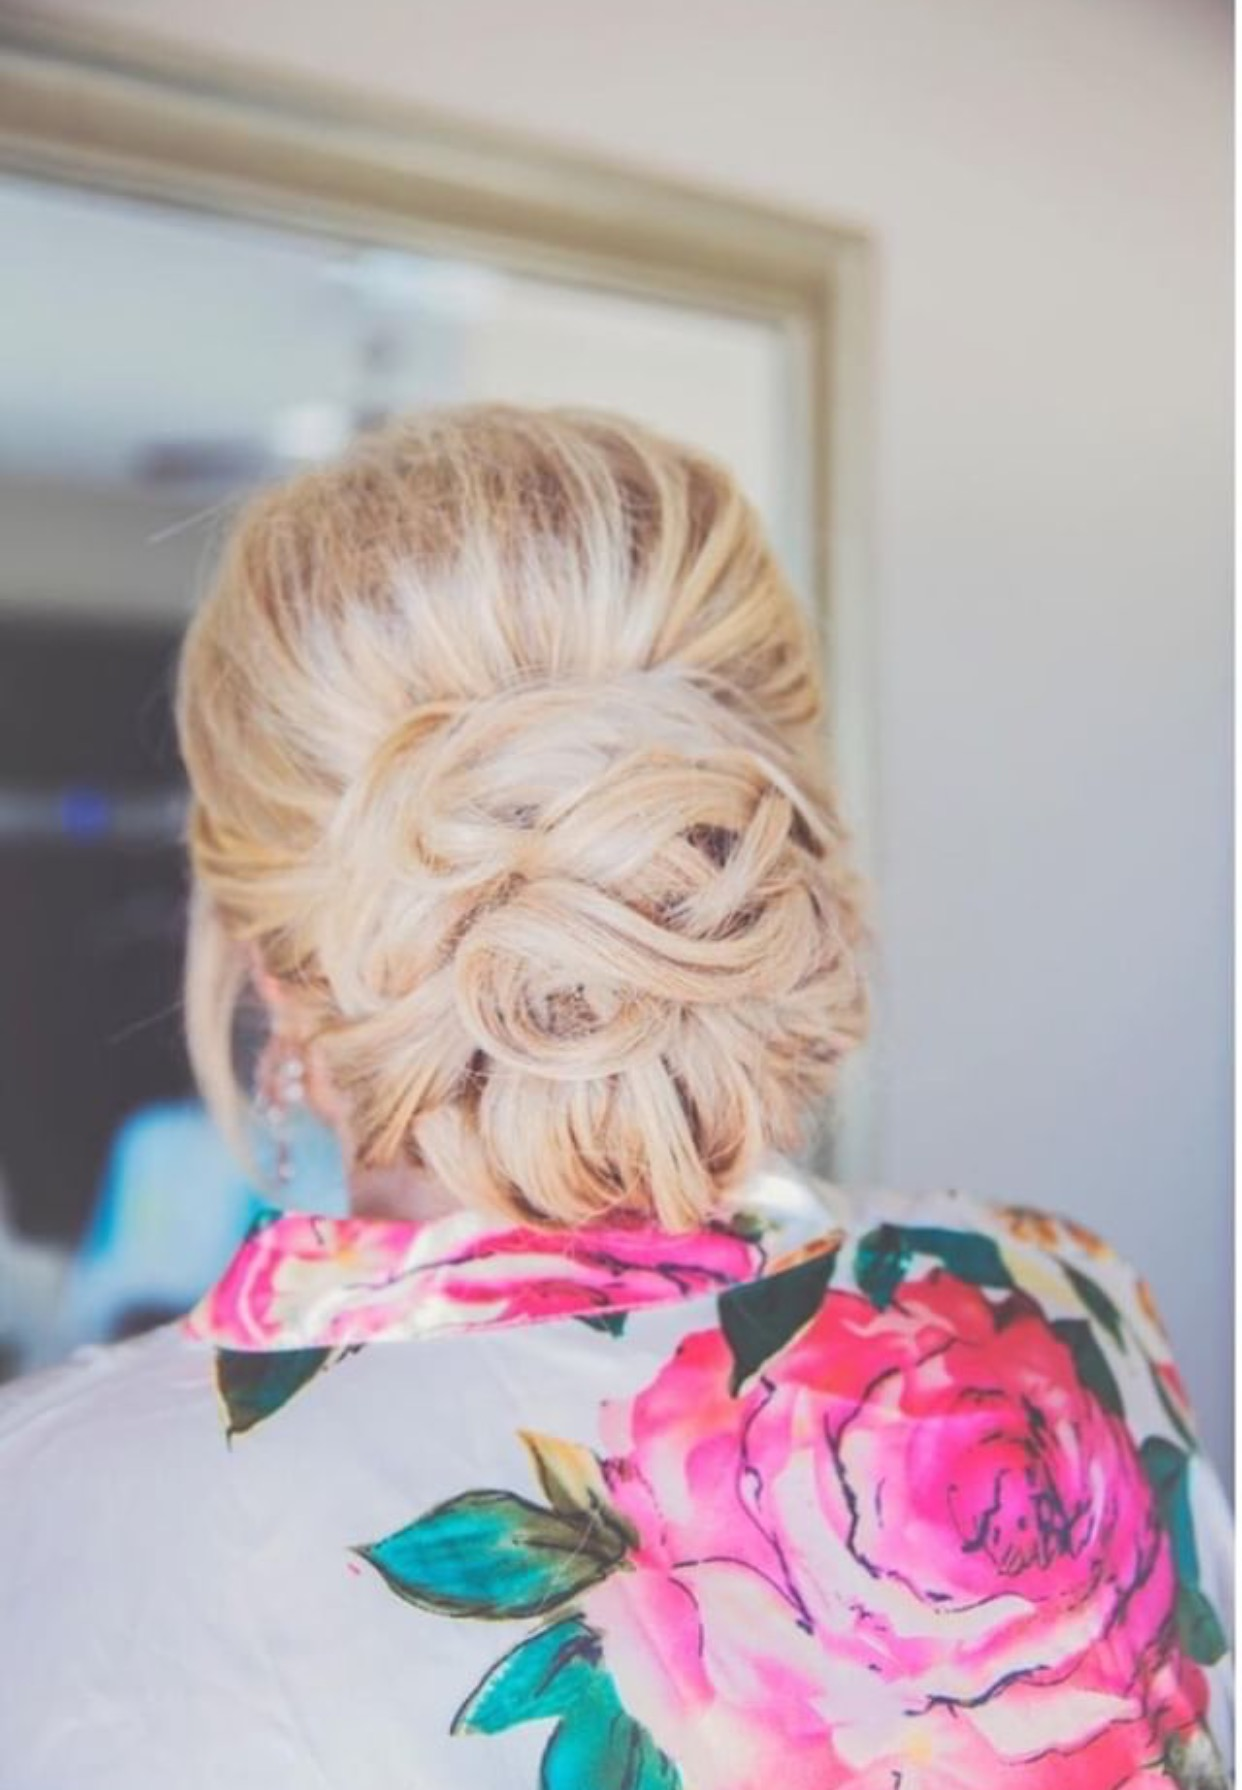 - 7. WHIMSICAL ROMANCEAN ETHEREAL TWIST ON THE CLASSIC LOW BUN. THE INTERTWINED LOOPS ADD THE PERFECT TOUCH OF ROMANCE....BRIDE: SYDNEY SHOEMAKERHAIR STYLIST: MADISON BILELLO HAIR AND MAKEUPPHOTOGRAPHER: LACEY MARIE